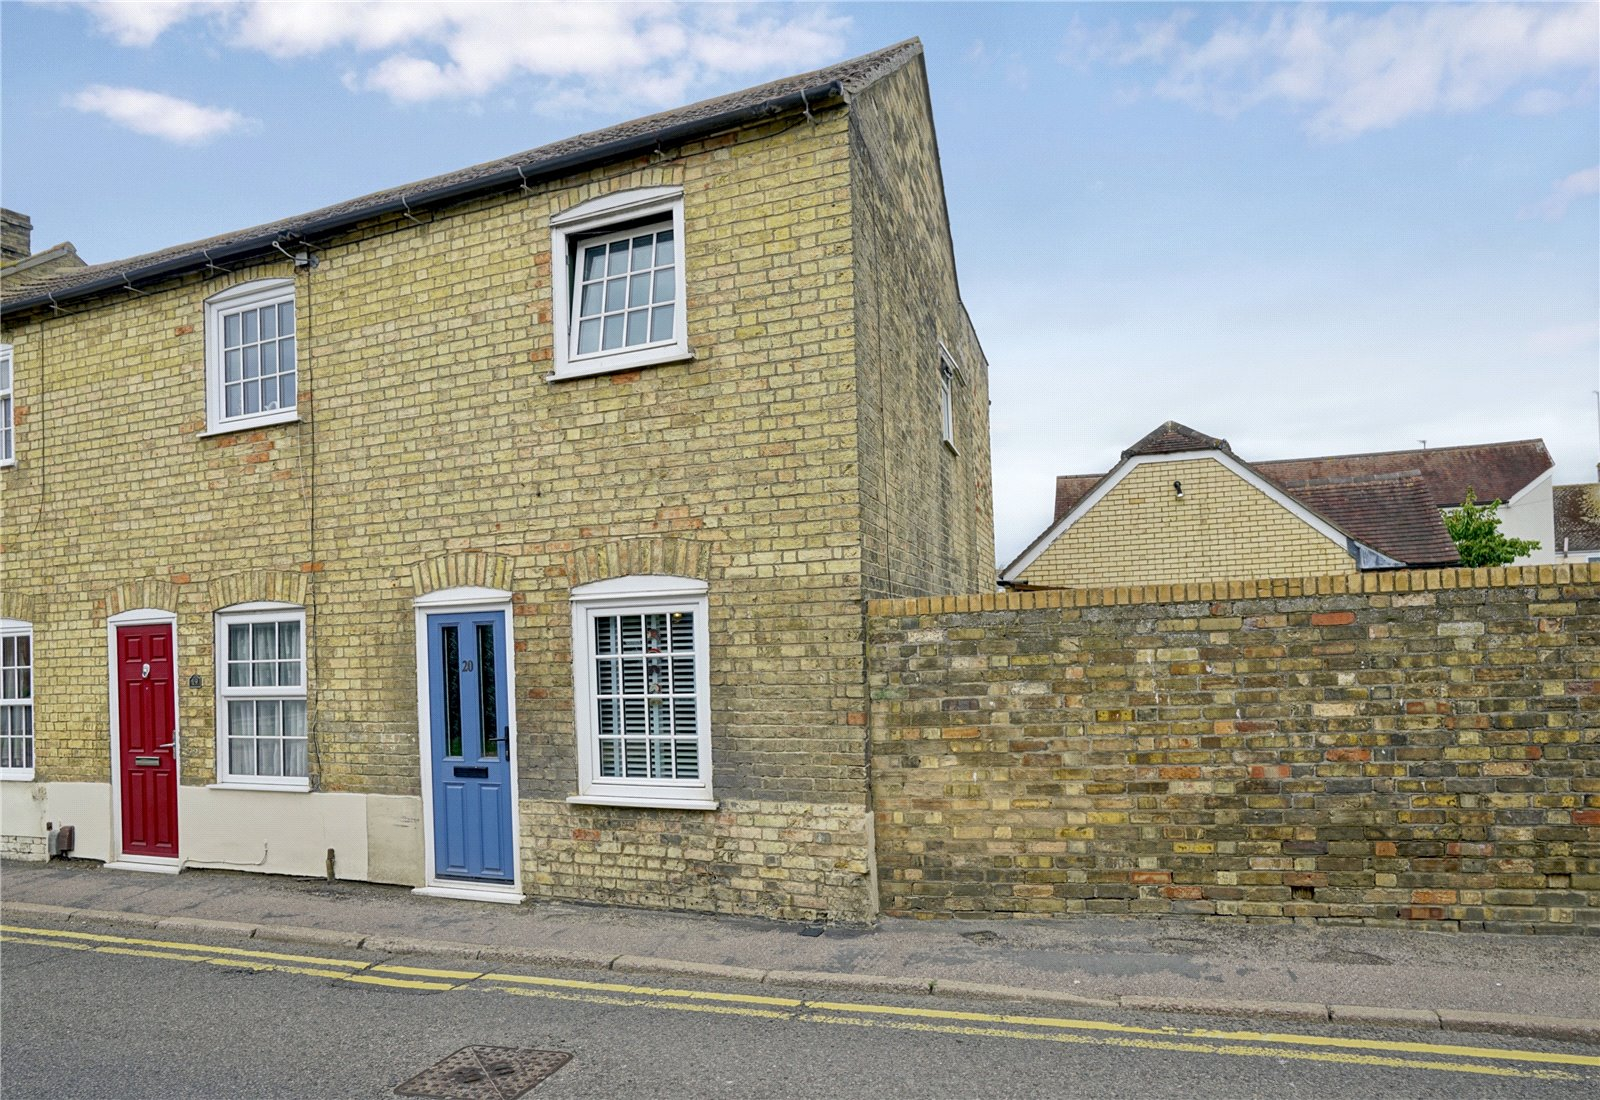 2 bed house for sale in Godmanchester, PE29 2HU, PE29